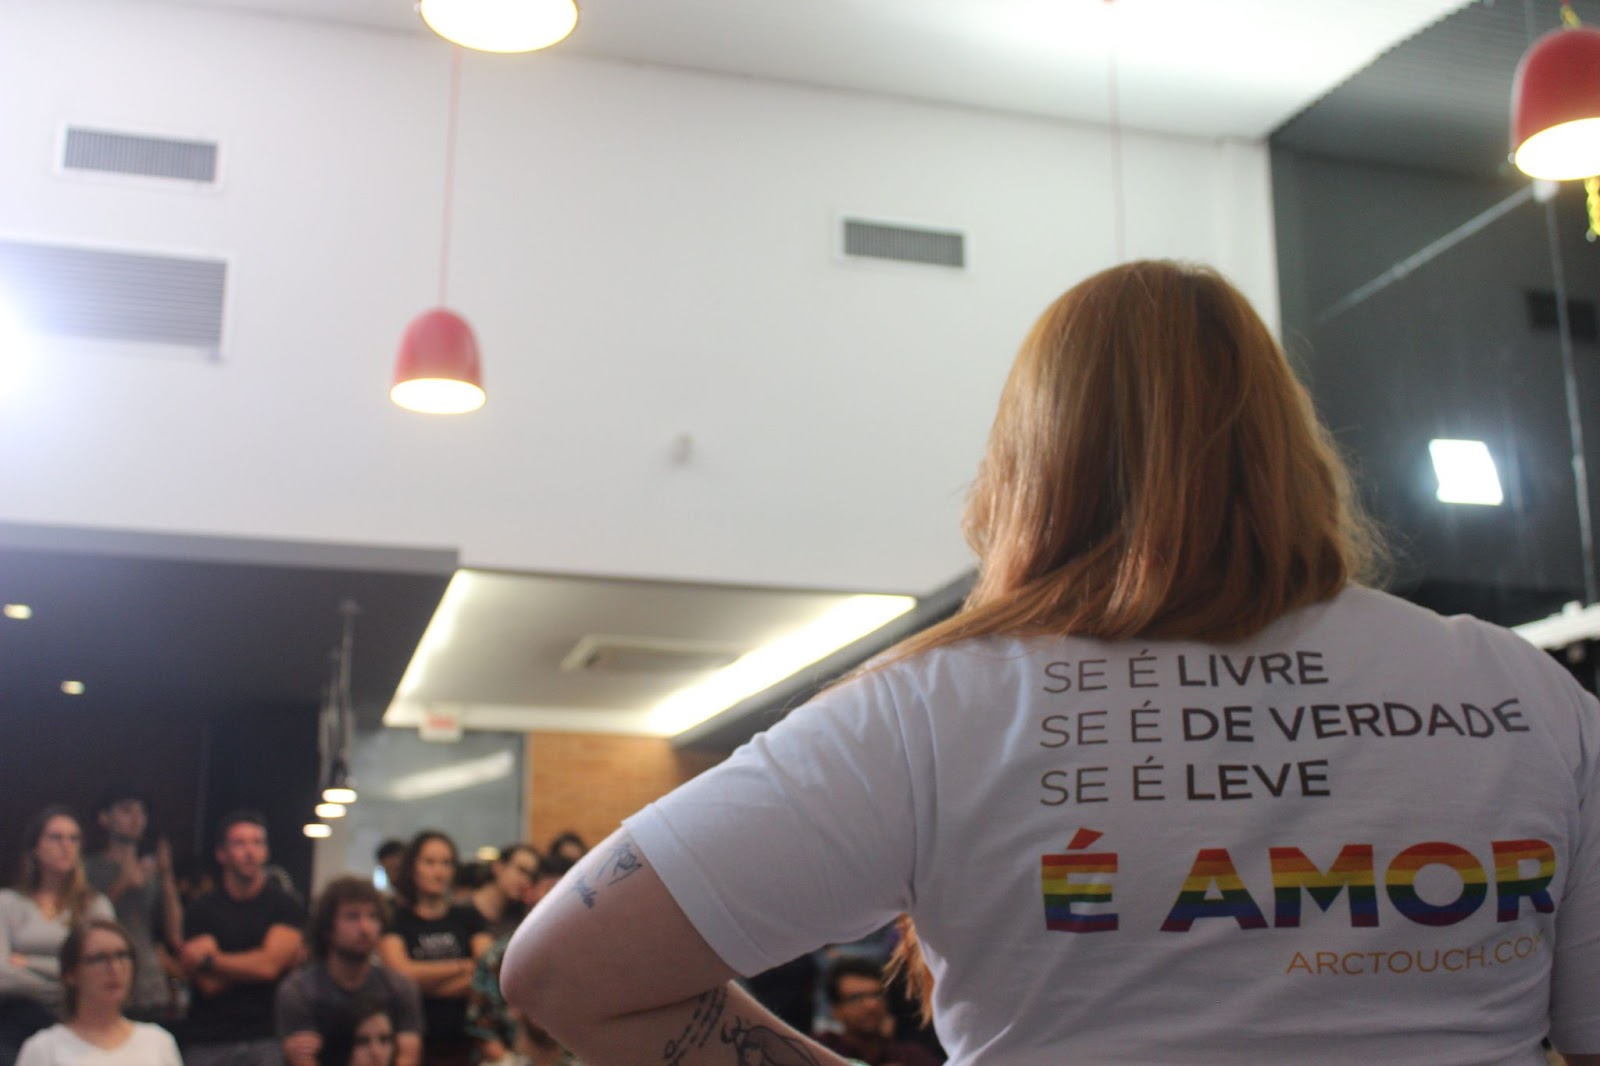 Image from GDG Floripa event